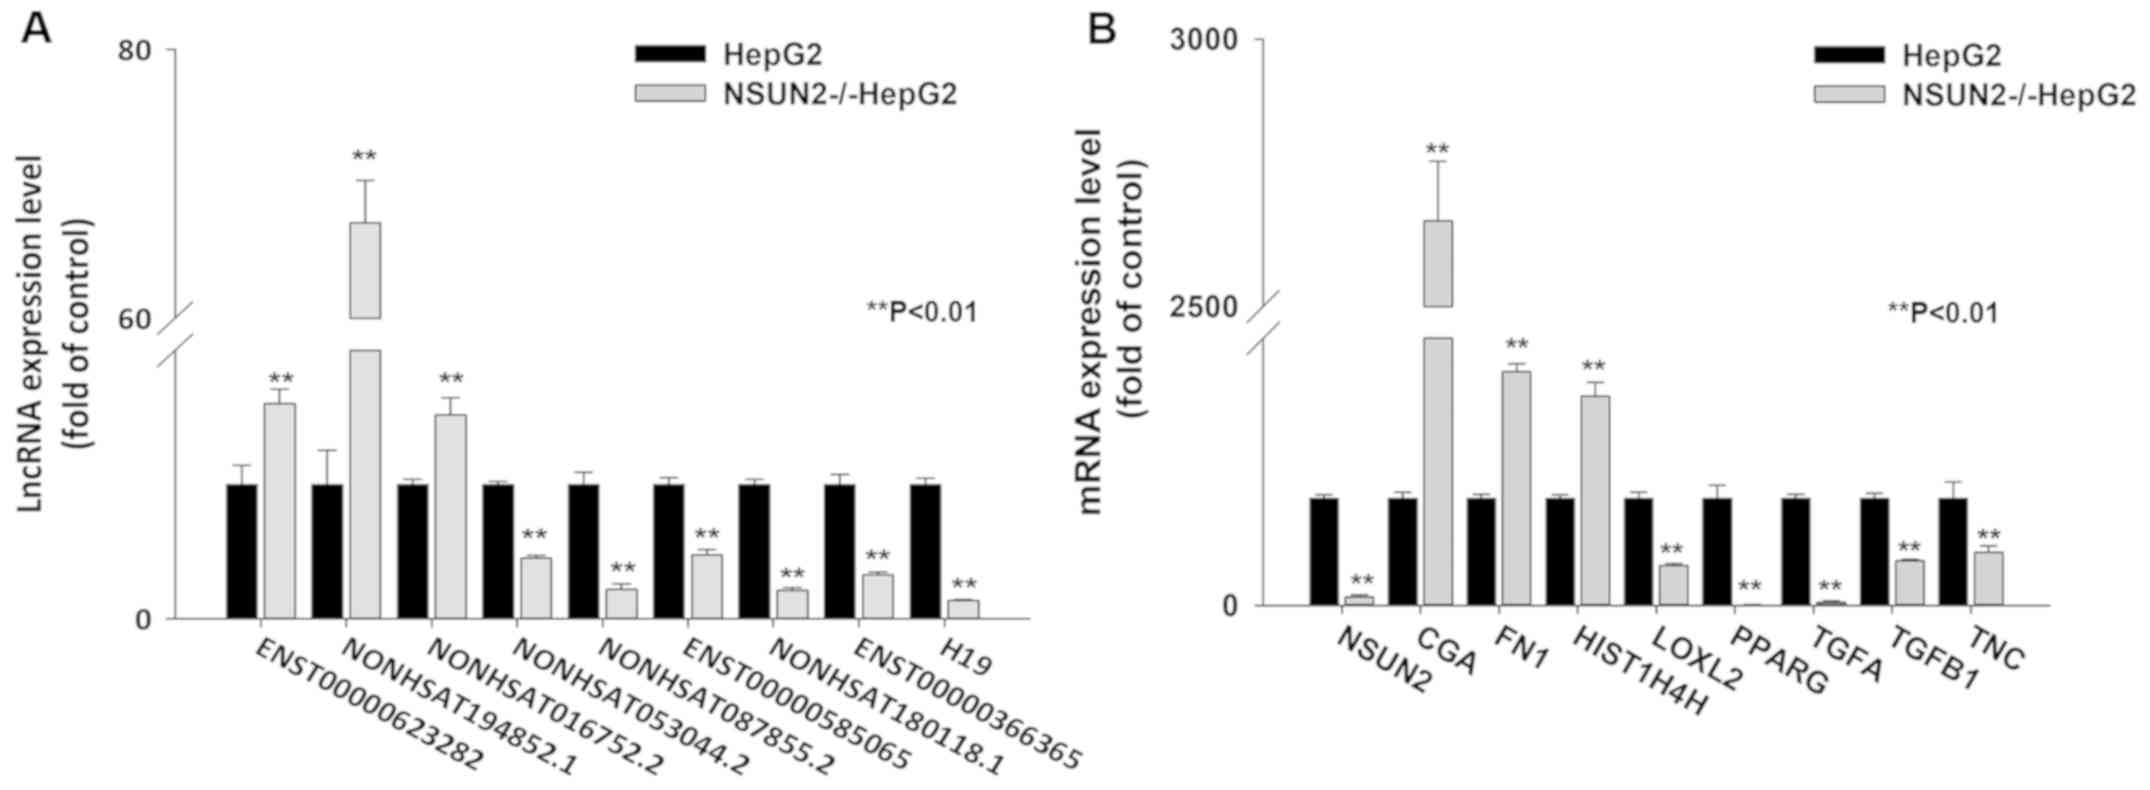 Expression Profiles Of Long Noncoding Rnas Associated With The Nsun2 Gene In Hepg2 Cells